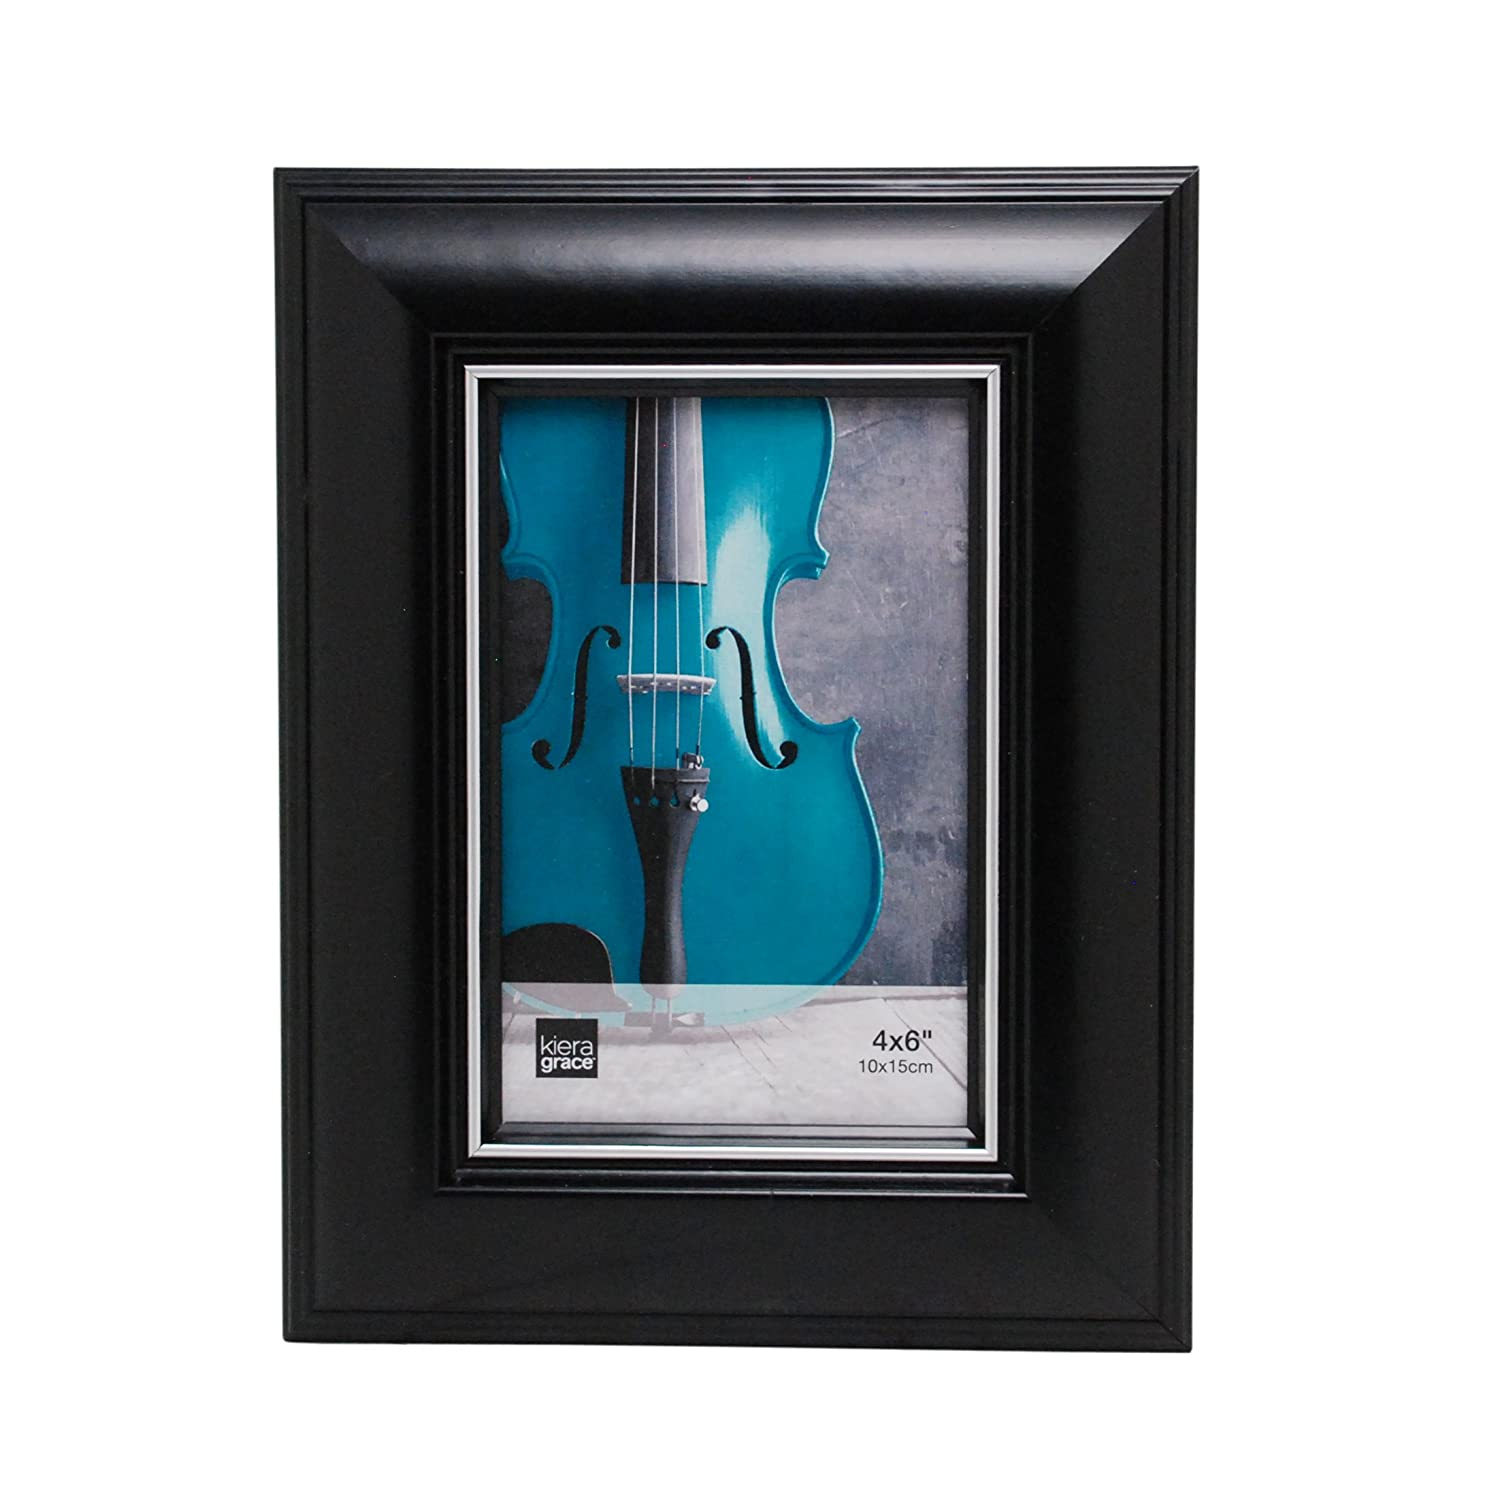 Kiera Grace Hunter Picture Frame, 4 by 6-Inch, Black with Silver Line AZ Home and Gifts PH43780-8